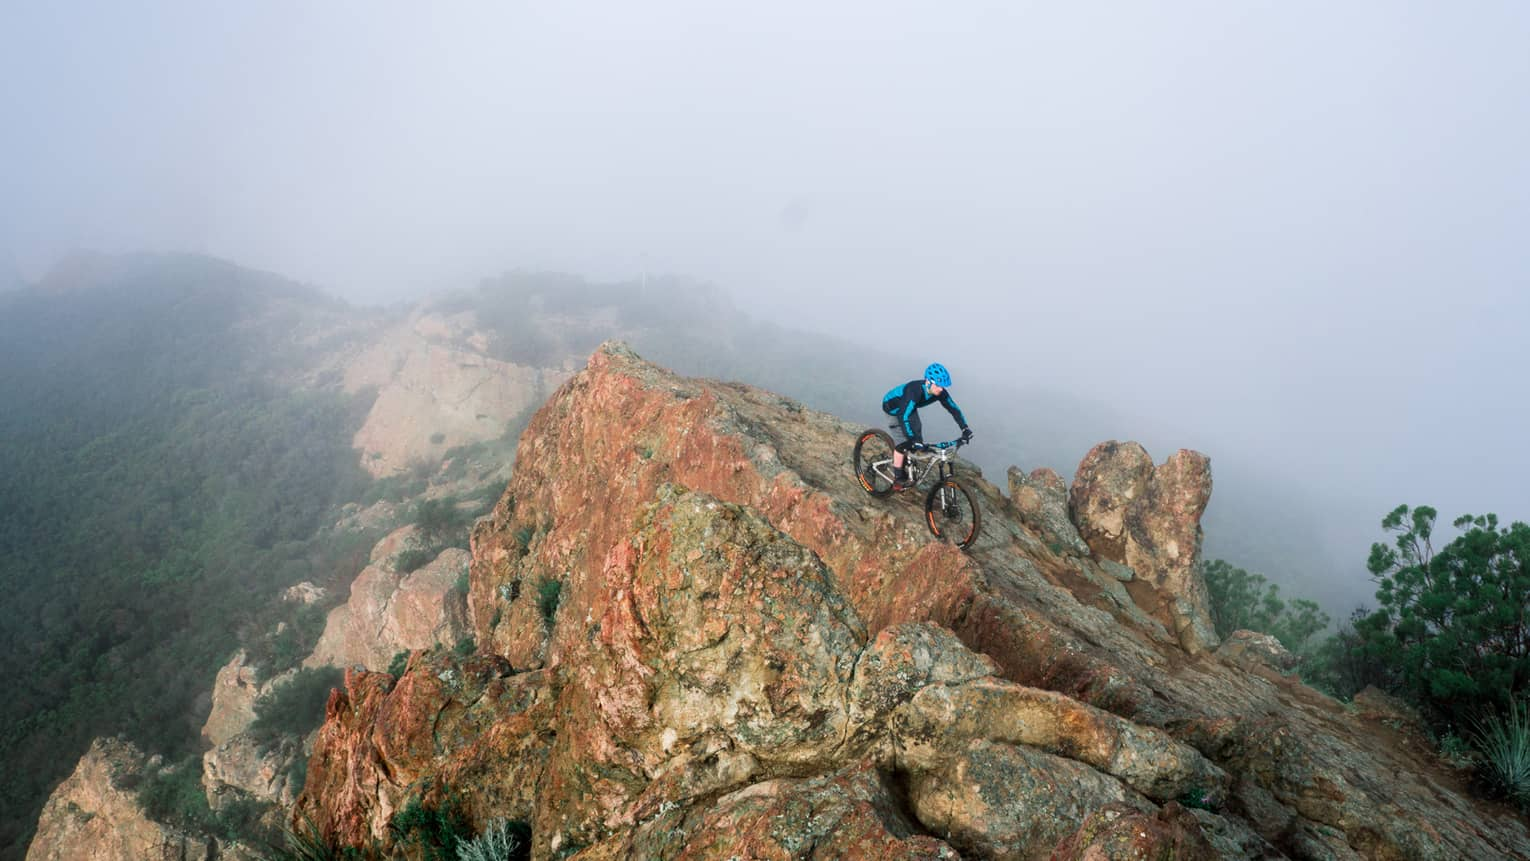 Cyclist rides down large boulder at top of misty mountain